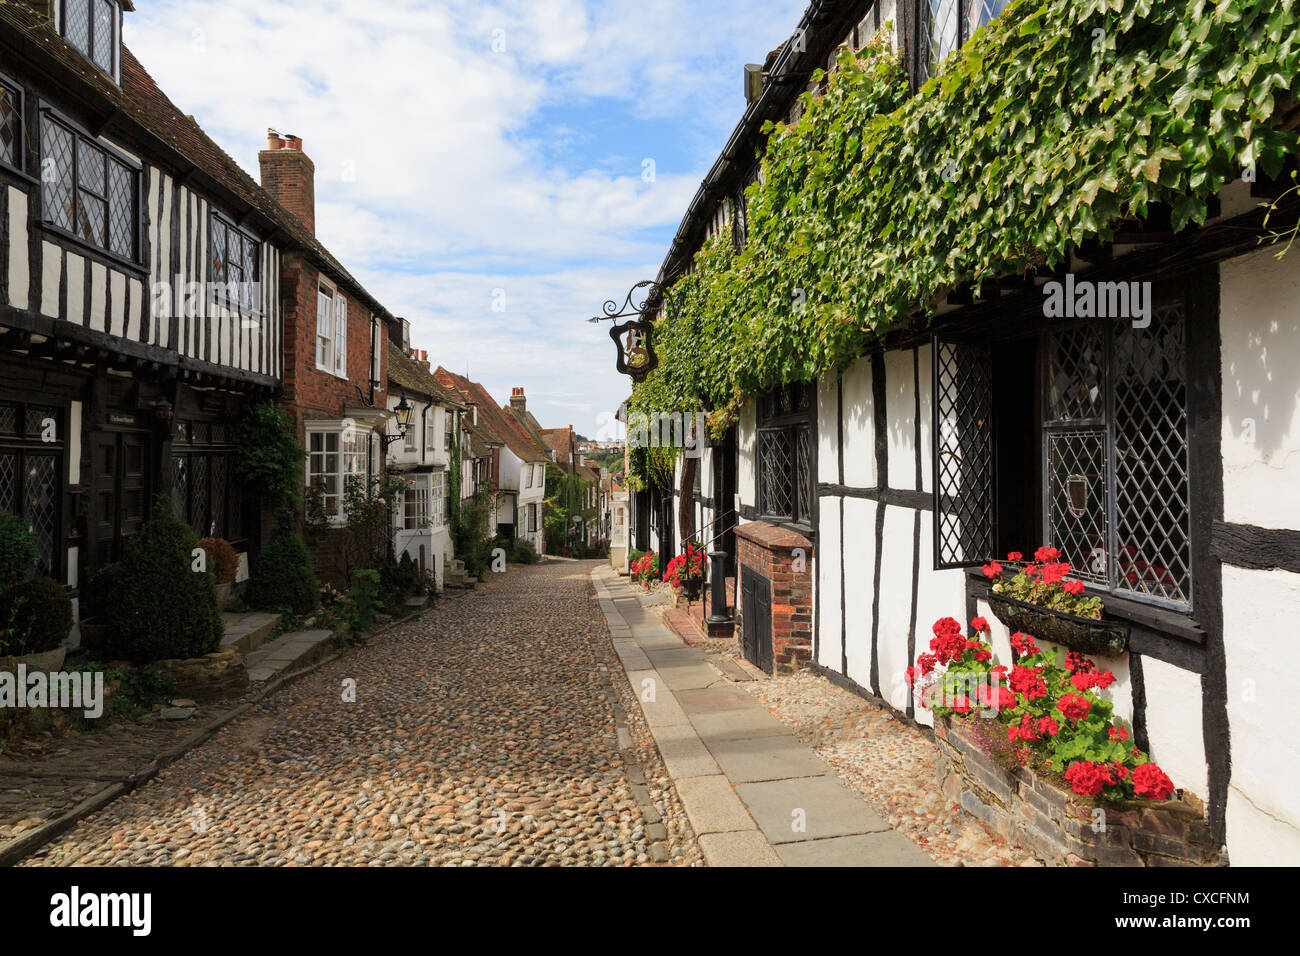 15th century timbered Mermaid Inn on quaint narrow cobbled street in historic picturesque Cinque Port town of Rye - Stock Image